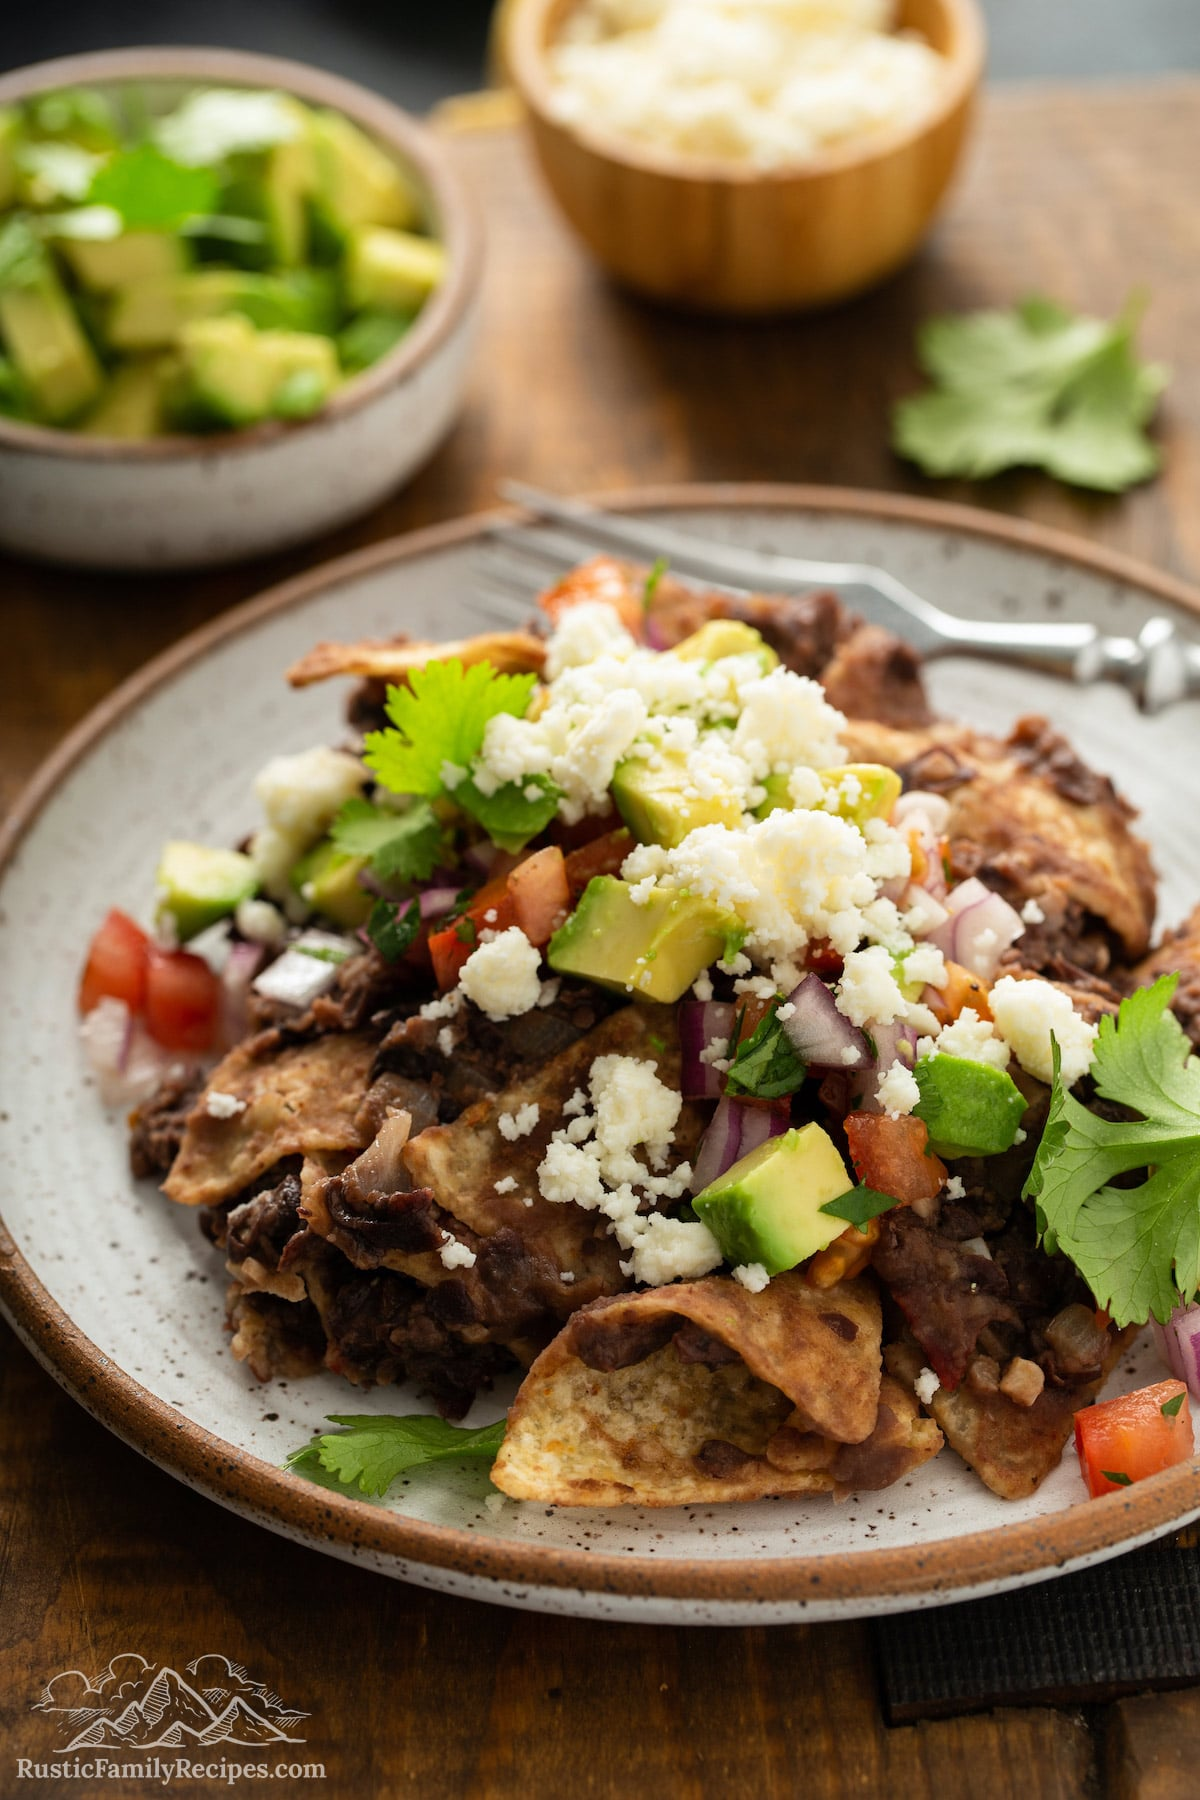 Chilaquiles on a plate topped with salsa, cheese and avocado.